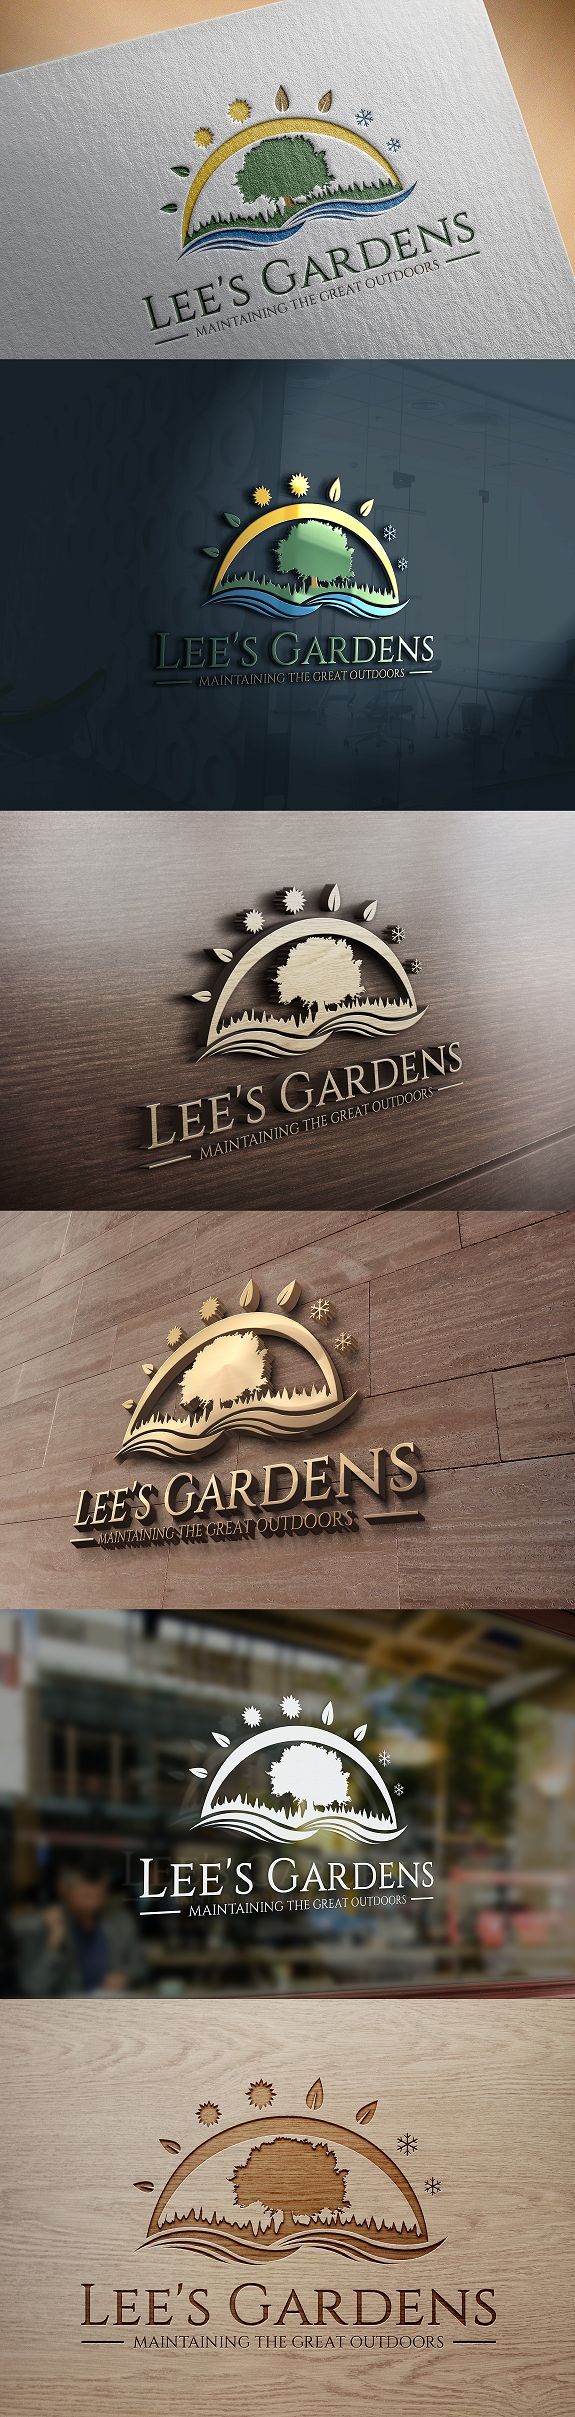 Design #57 by pinkywingky   Create logo for garden/grounds maintenance sole trader